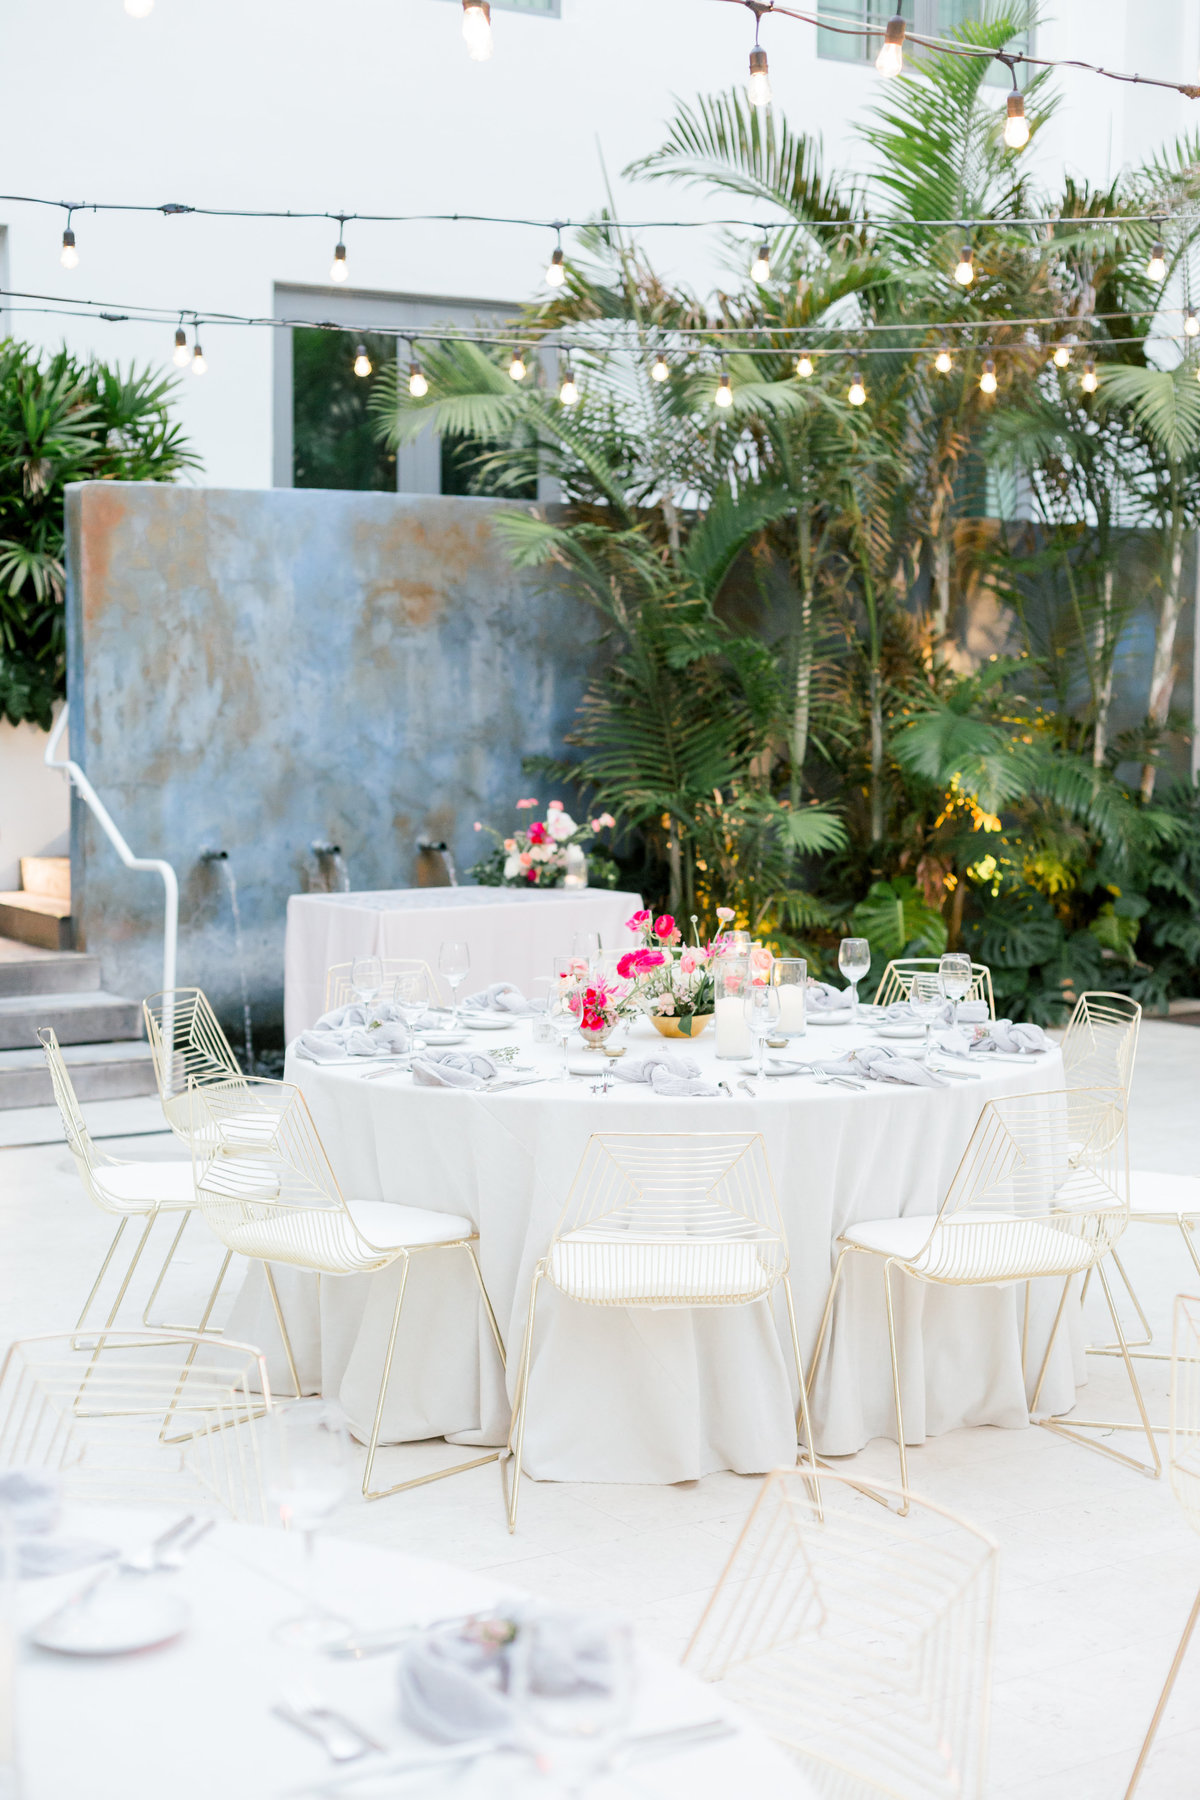 Halo Event Design - Florida Wedding PHotographer - Erica Melissa